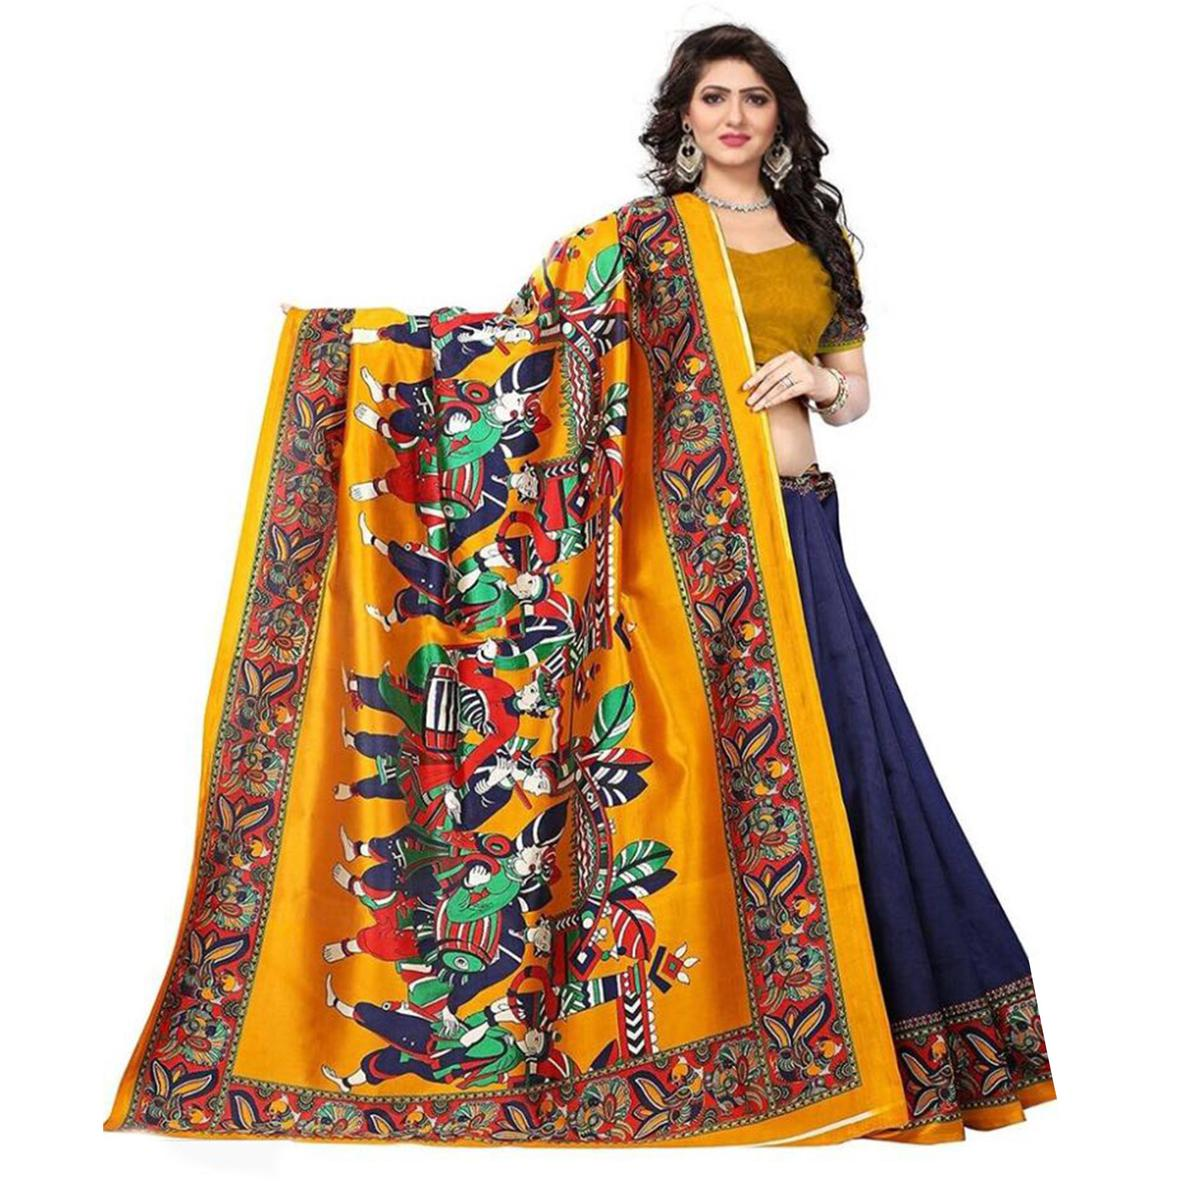 af9d55bd3 Buy Blissful Navy Blue-Mustard Yellow Colored Casual Printed Art Silk Saree  for women s online India